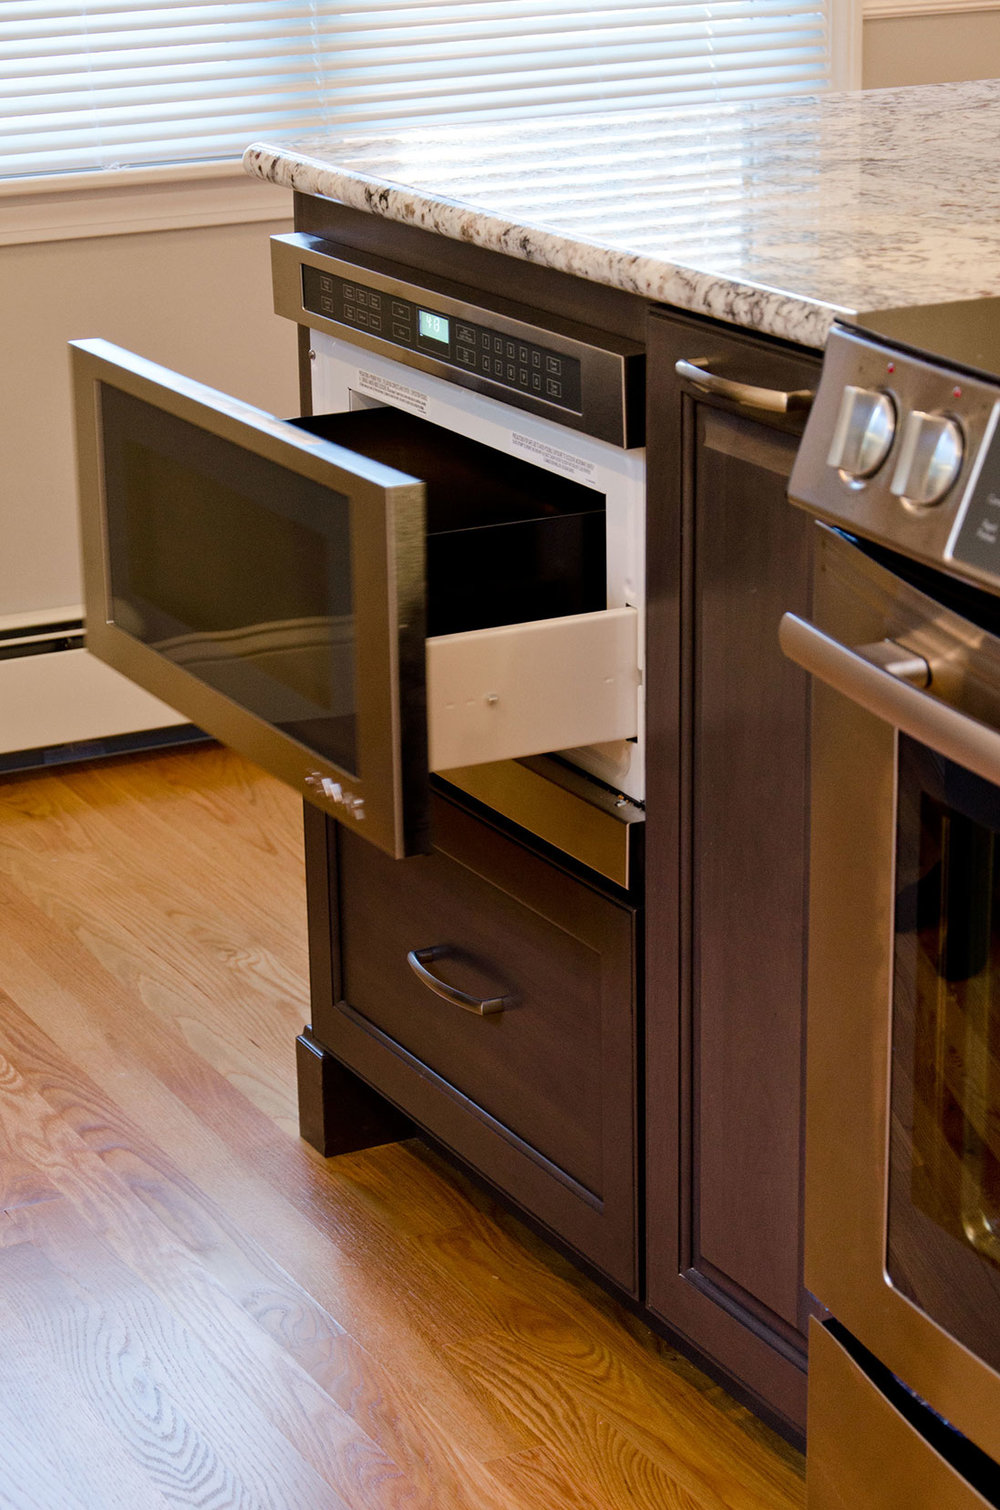 Kitchen interior design with microwave drawers